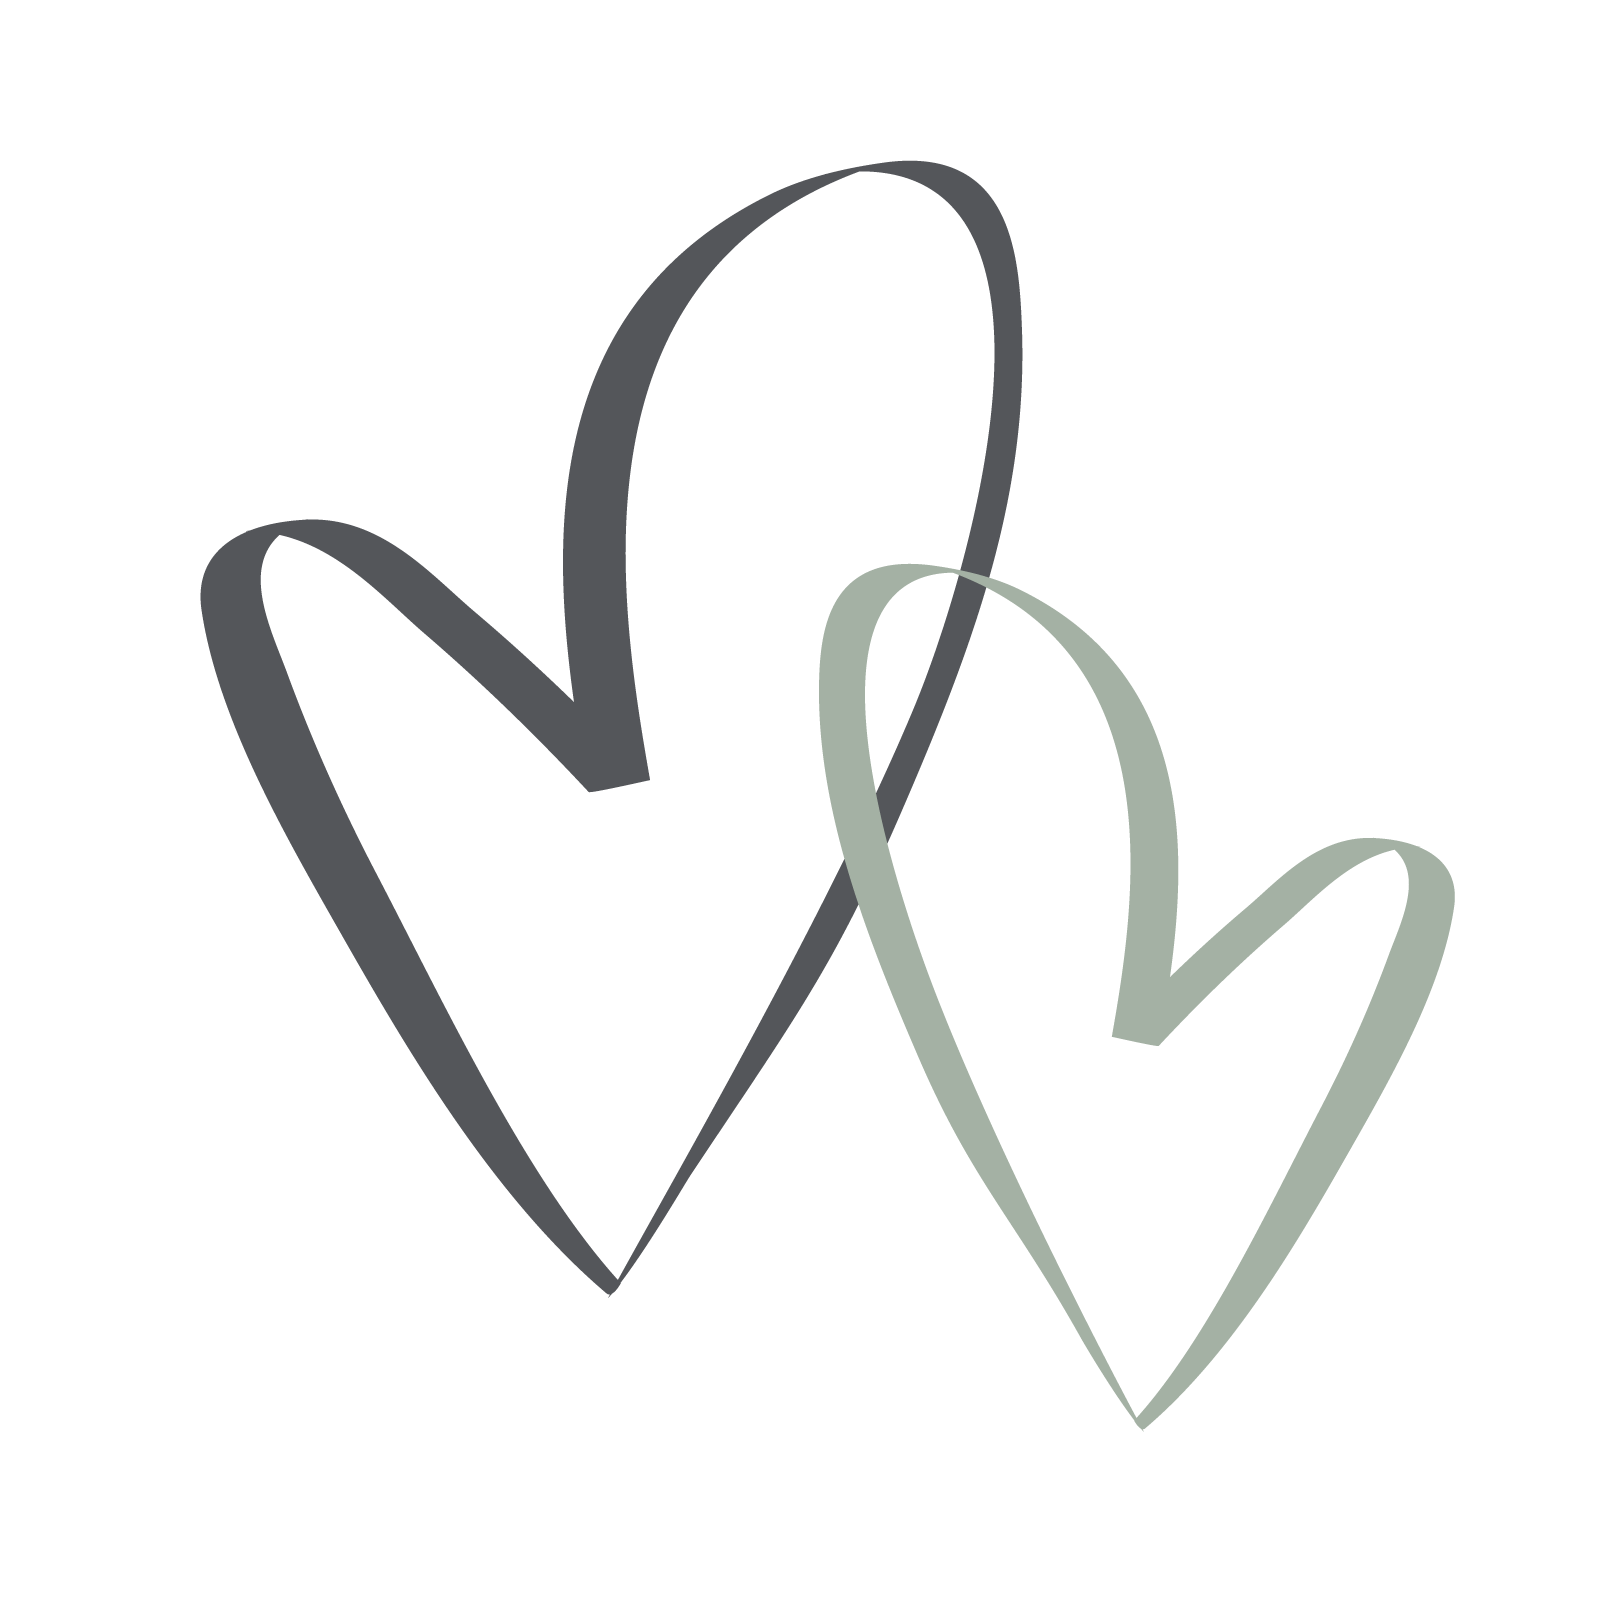 HEARTSno-background.png